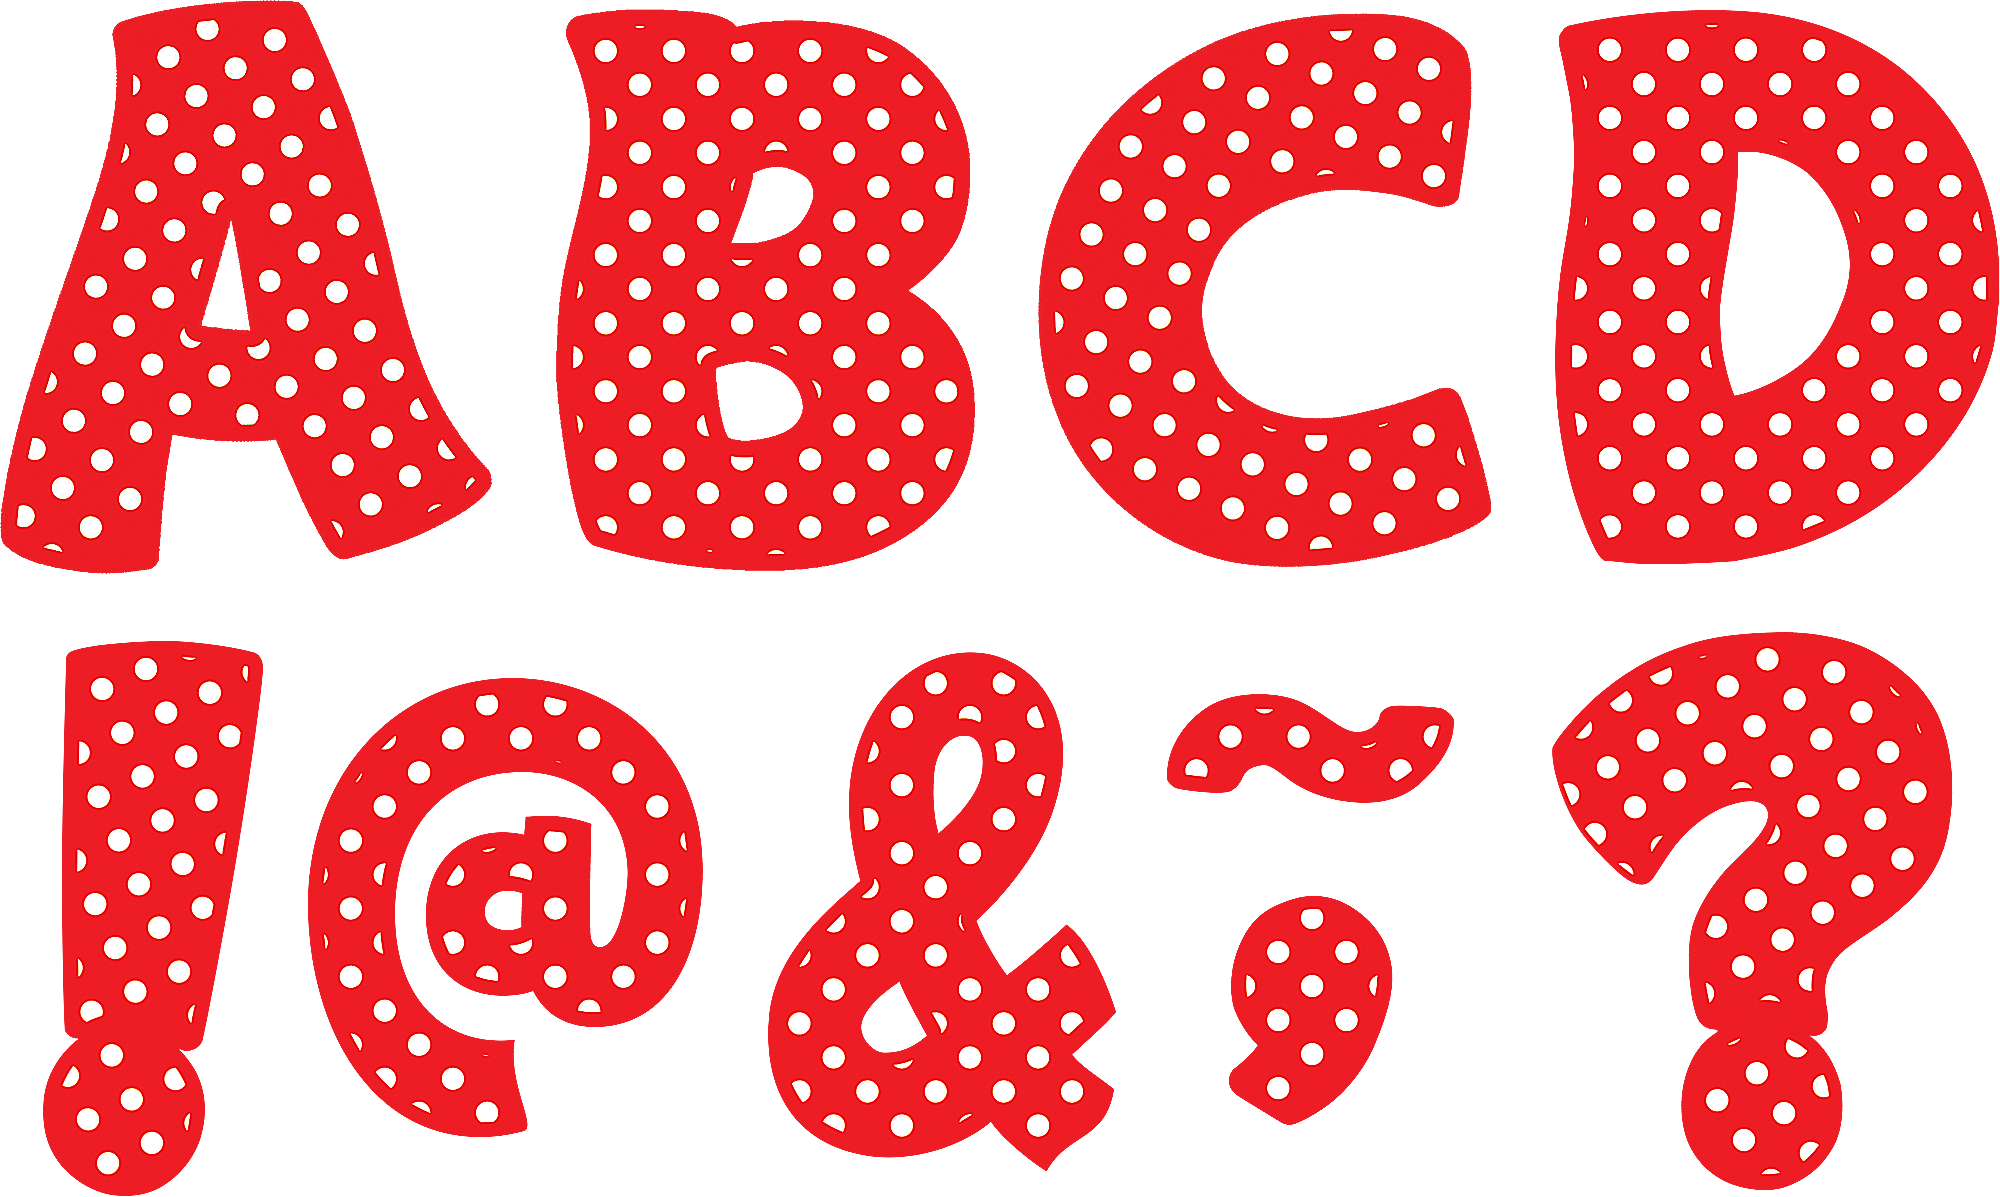 Red Polka Dots Funtastic Font 3 Quot Magnetic Letters Works